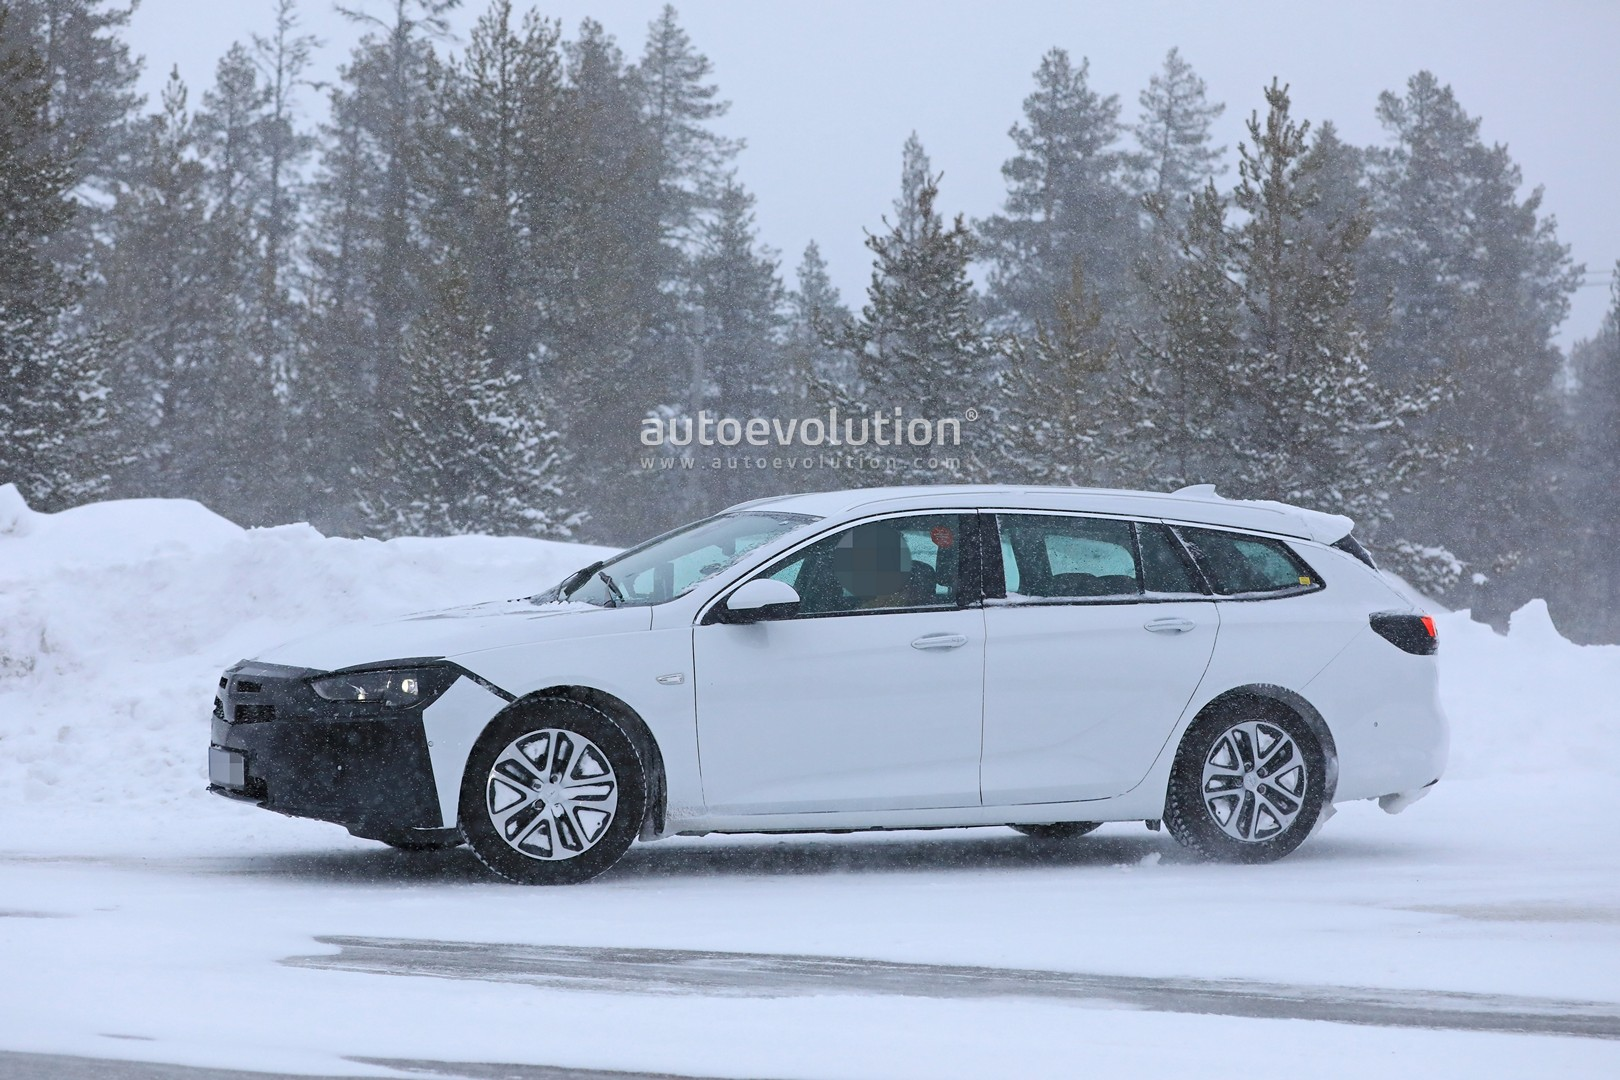 2020 Opel Insignia Facelift Spied Ready For Peugeot 508 Tech